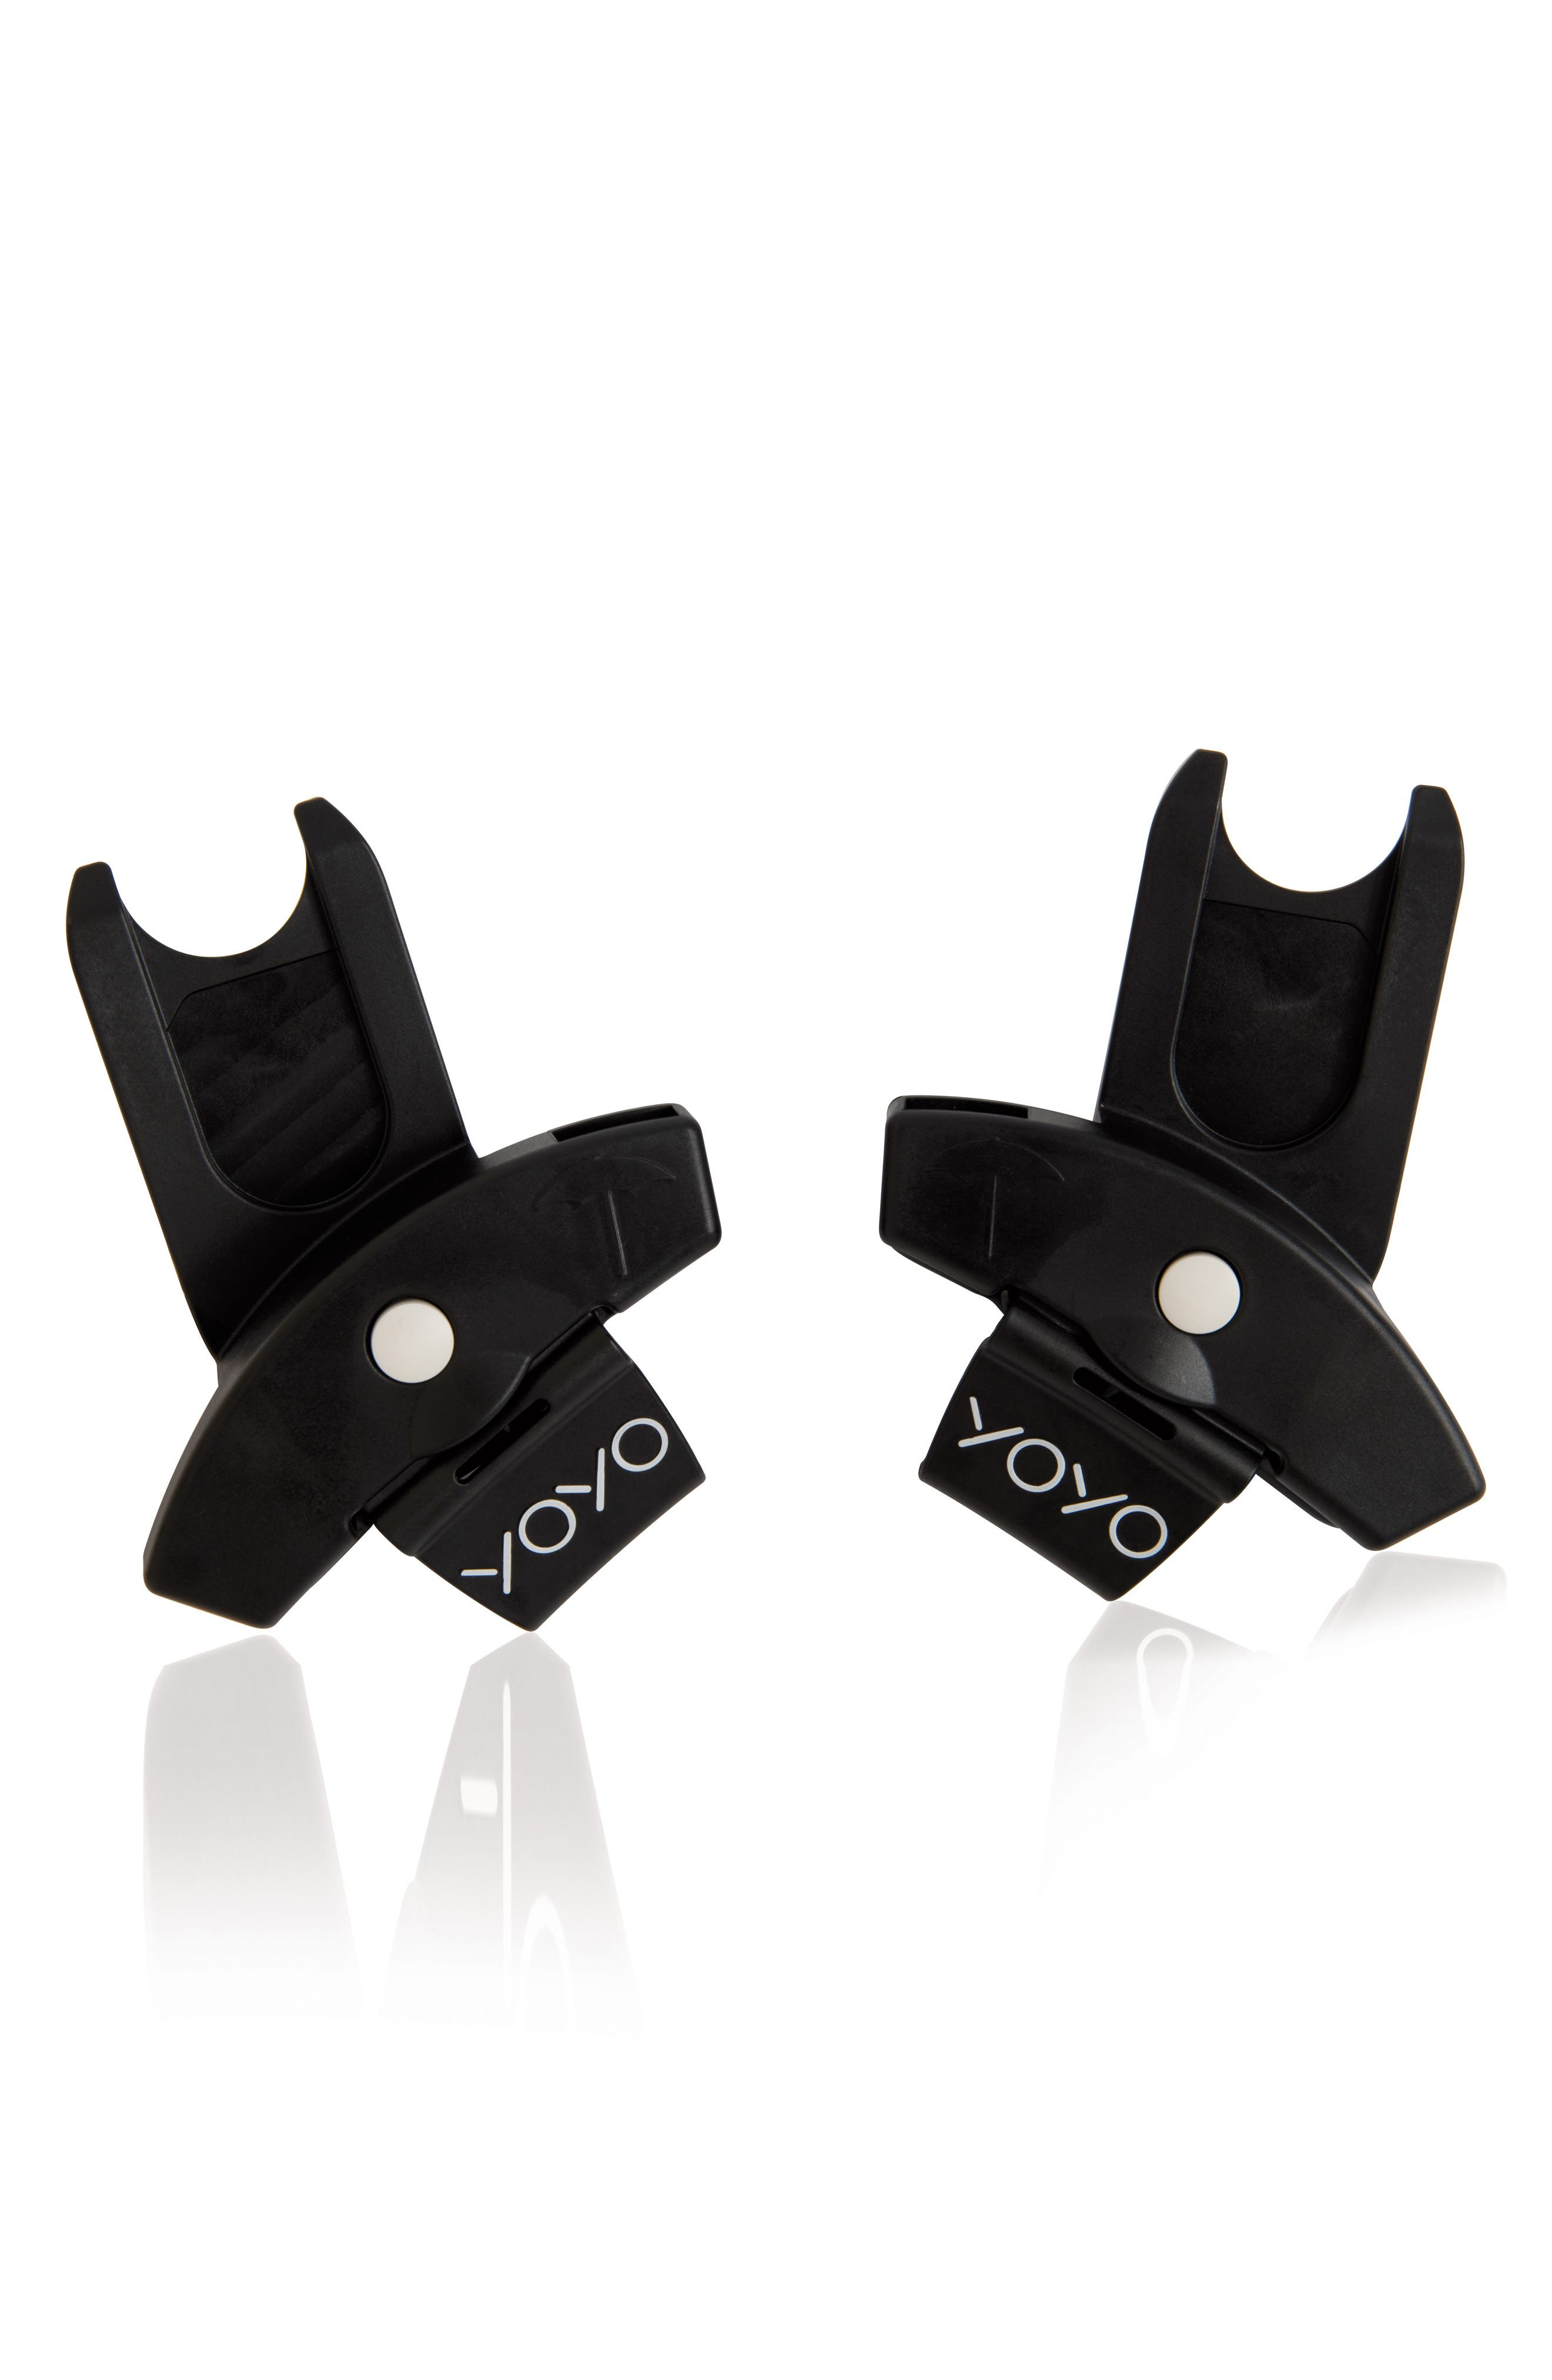 Alternate Image 1 Selected - Babyzen Adapters for YOYO+ Stroller & Cybex, Nuna and Maxi-Cosi® Infant Car Seats